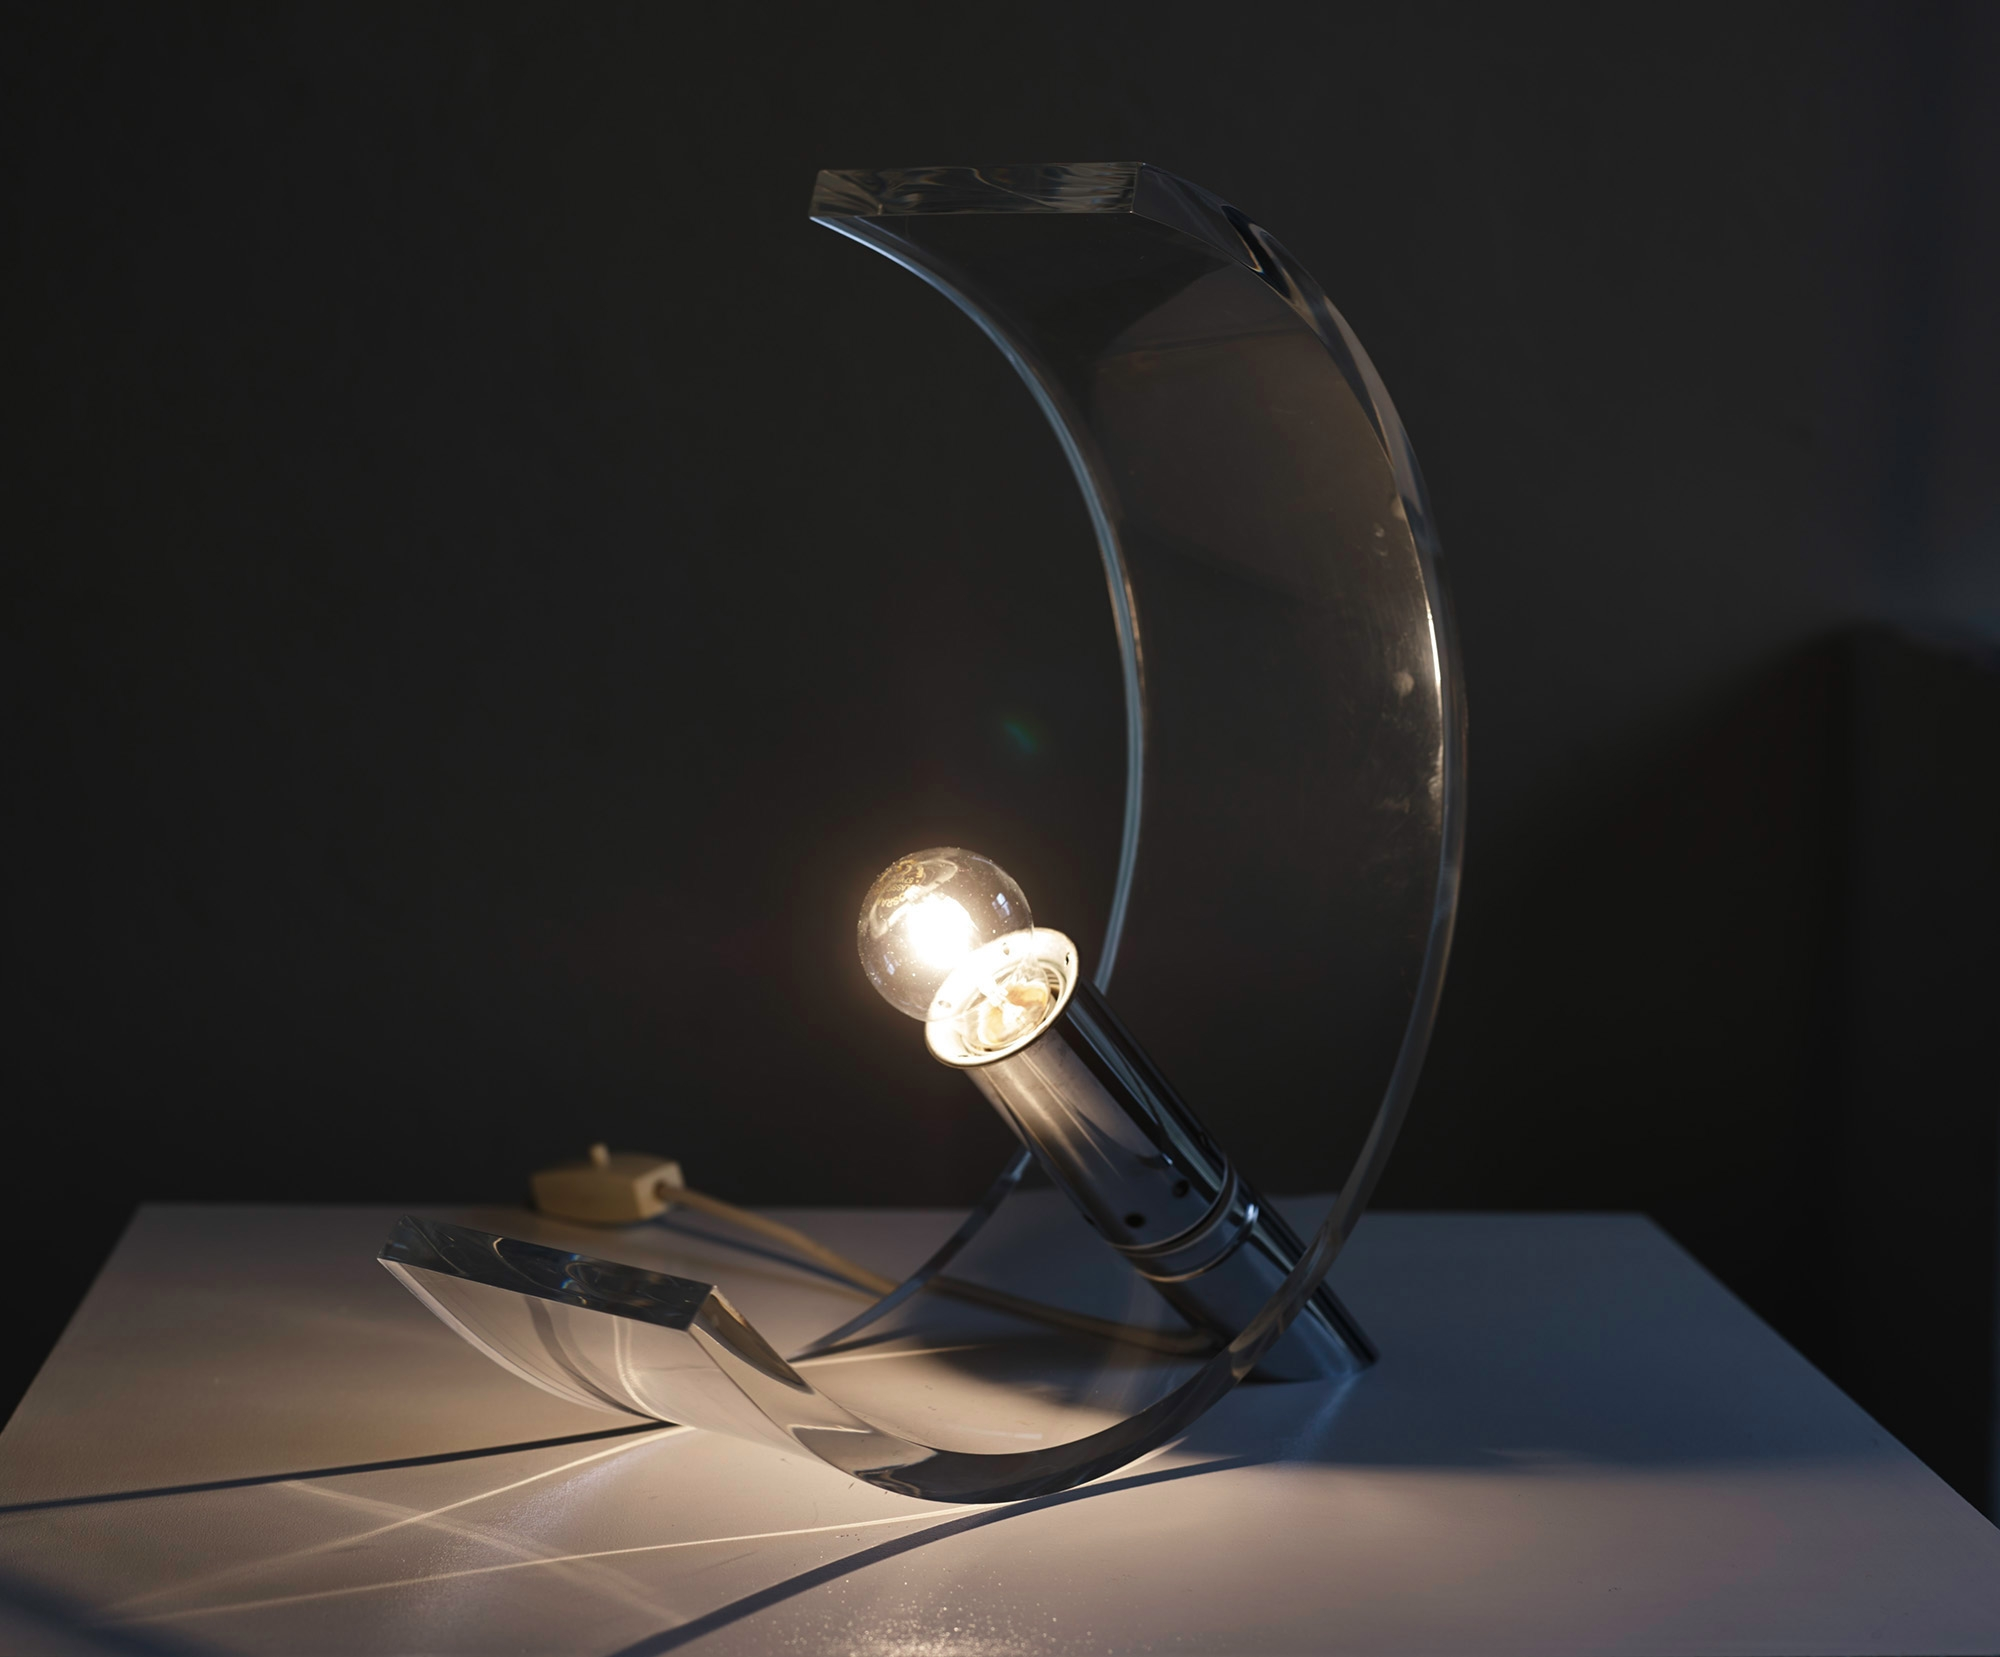 plexiglas-table-lamp-by-atelier-a-image-06